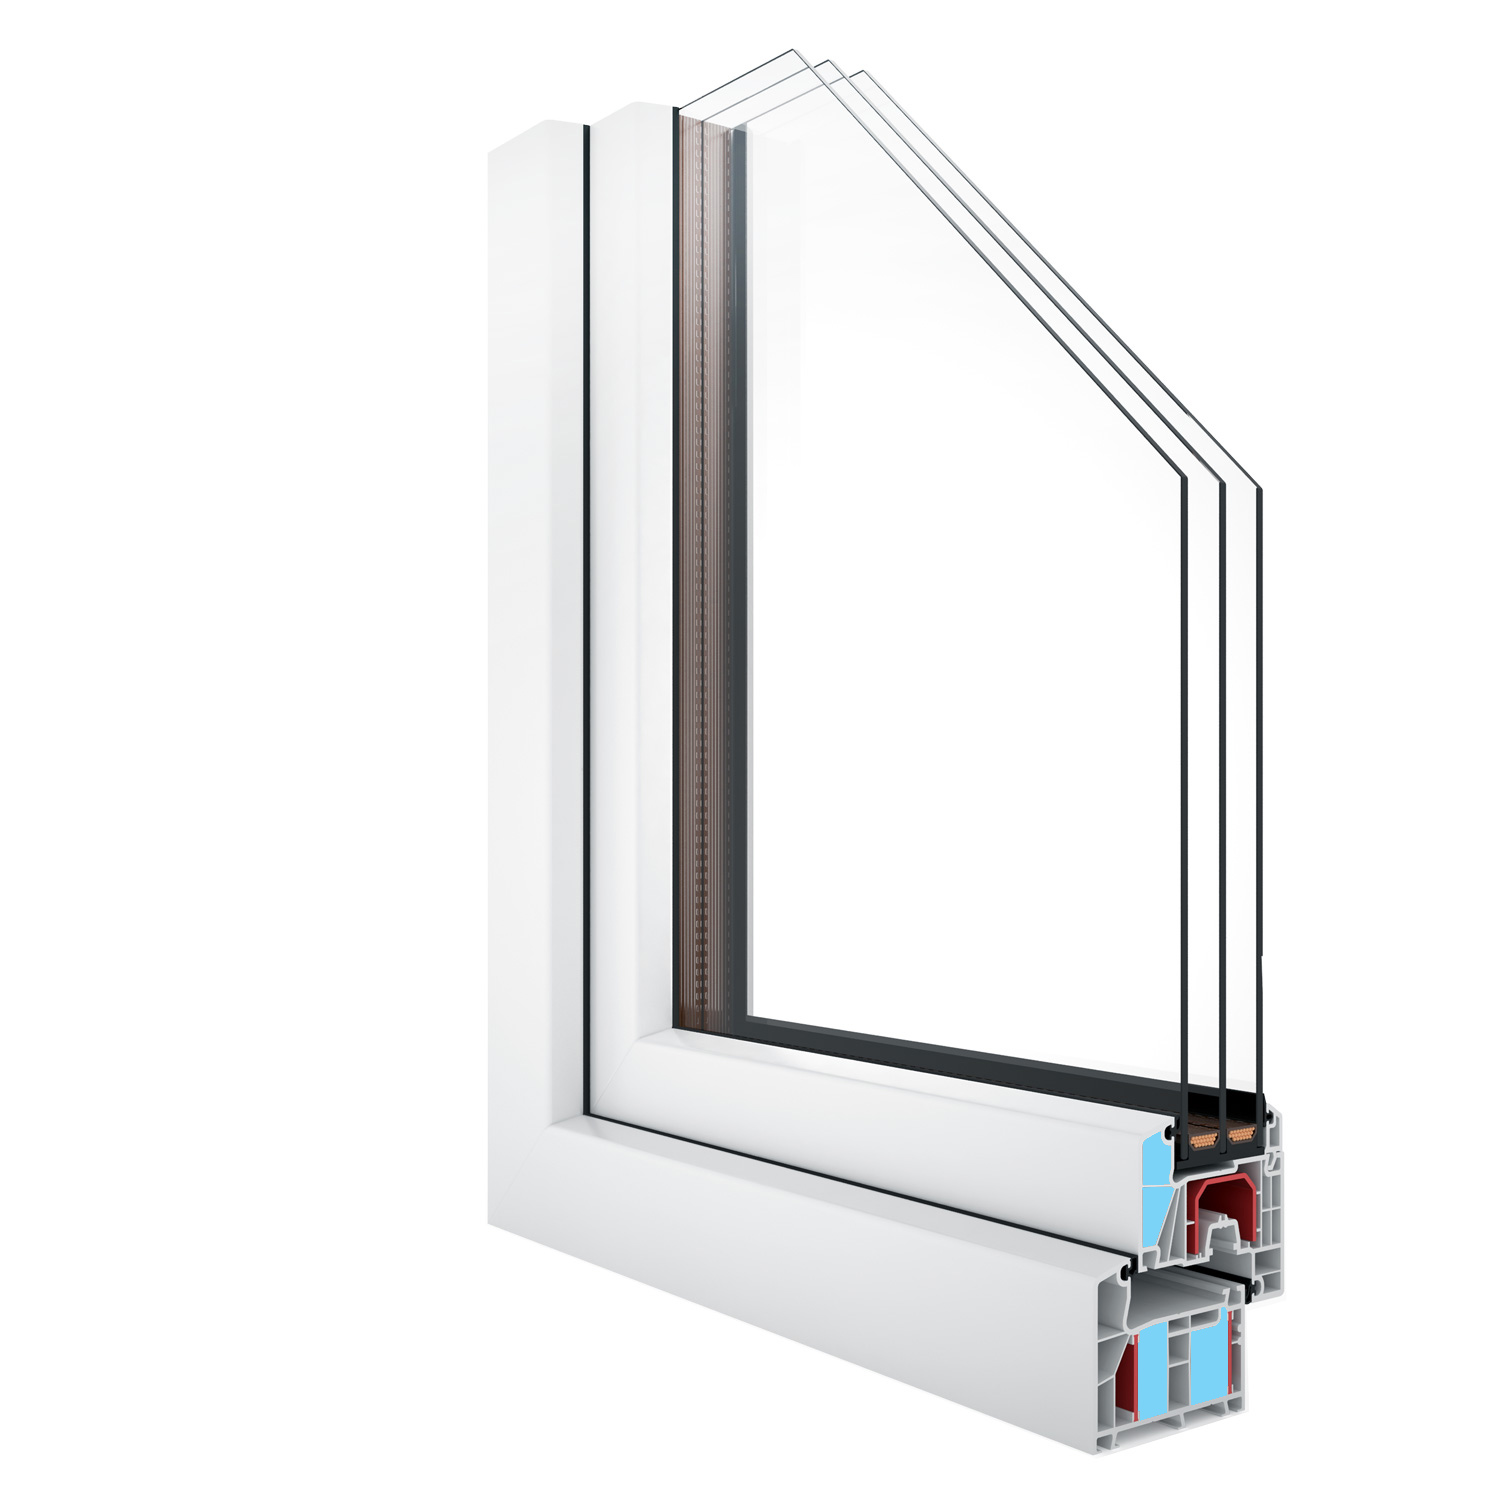 R-8 Zola Thermo Plus uPVC™ Passive House window rendering